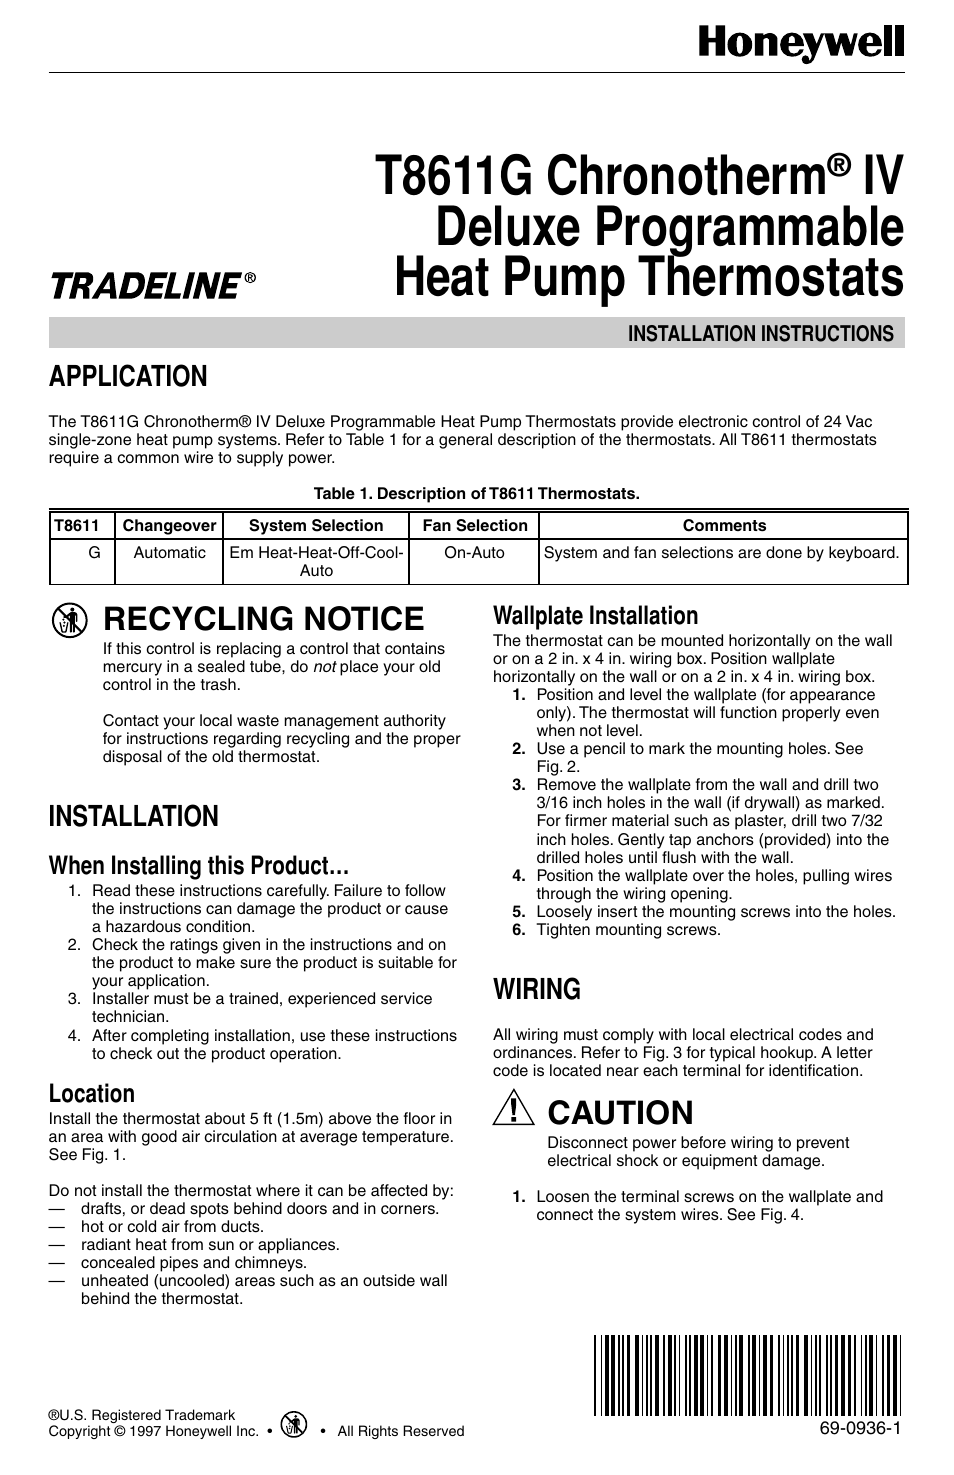 Honeywell T8611g Thermostat Wiring Diagram Portal T8011r User Manual Product Guide Chronotherm Iv 12 Pages Rh Manualsdir Com Heat Pump